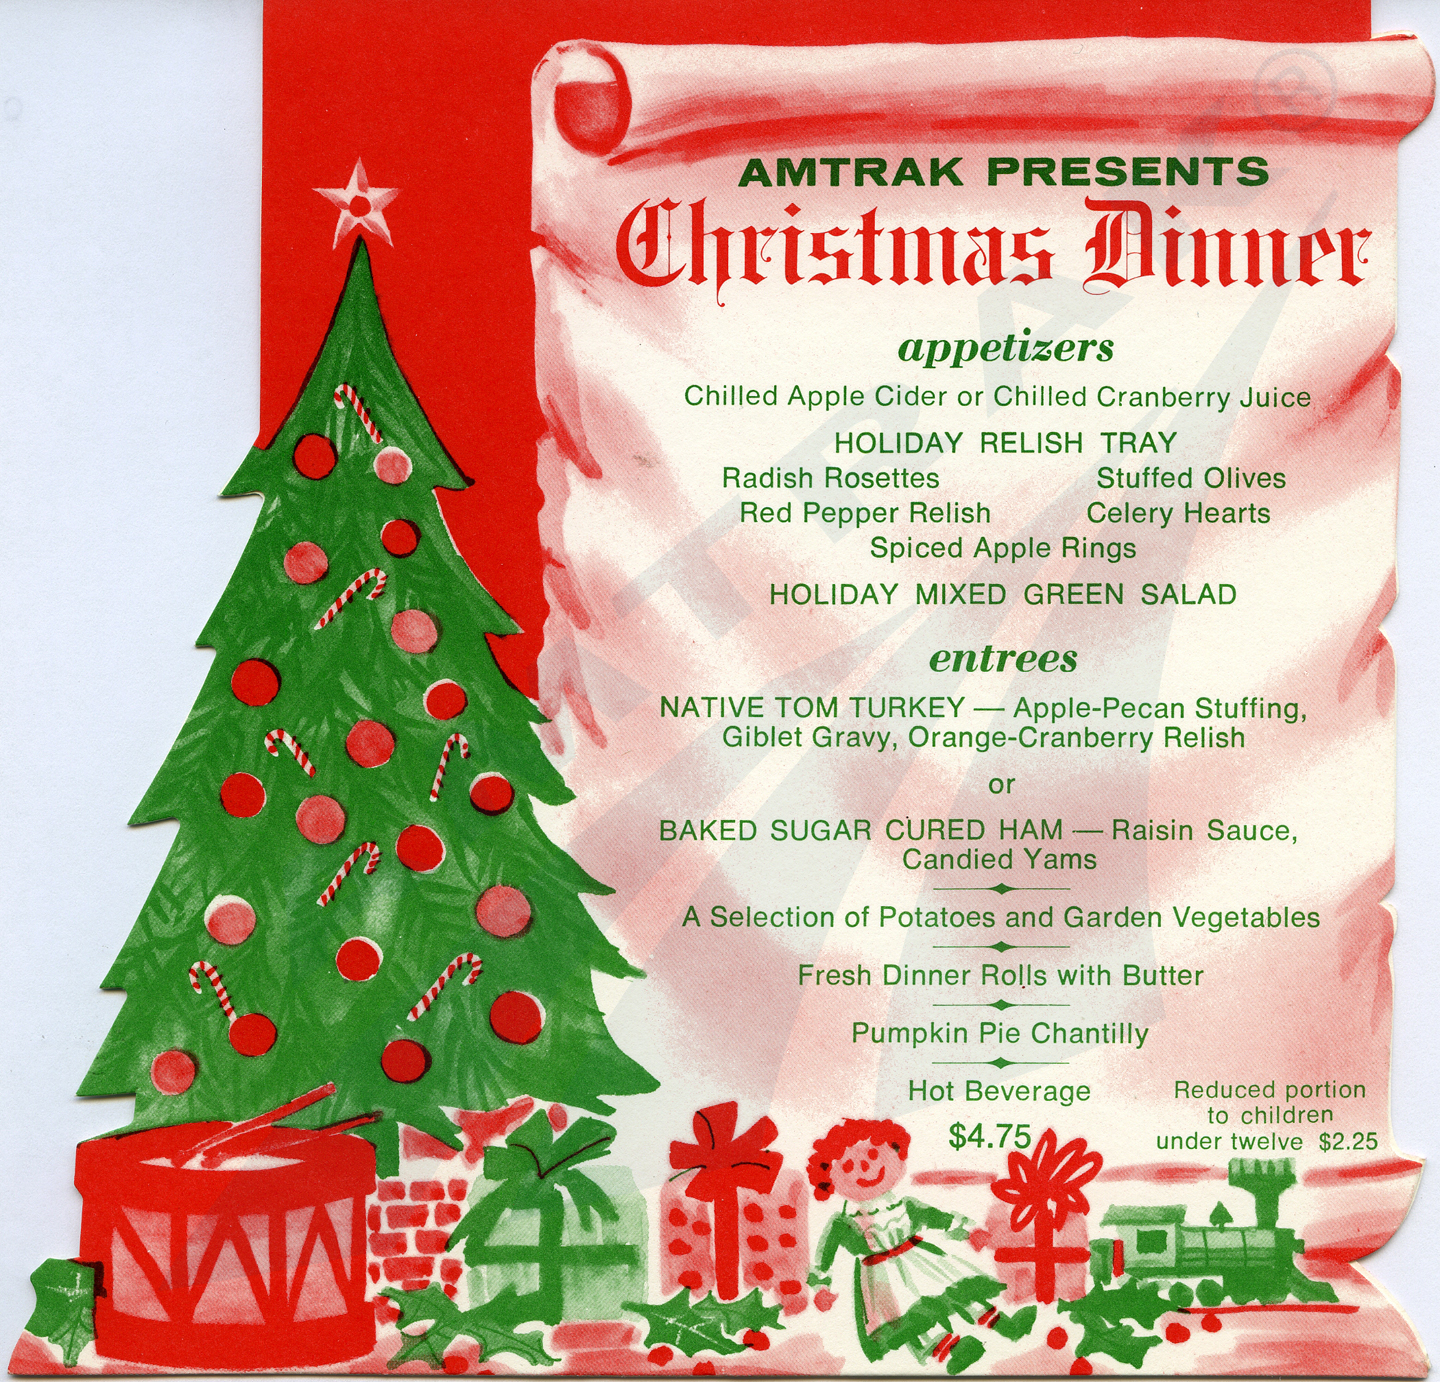 Top 10 Calories Infographics in addition Chimex 85760090 in addition Bacon also C0 3390 3410 as well Christmas Dinner Menu. on turkey ham